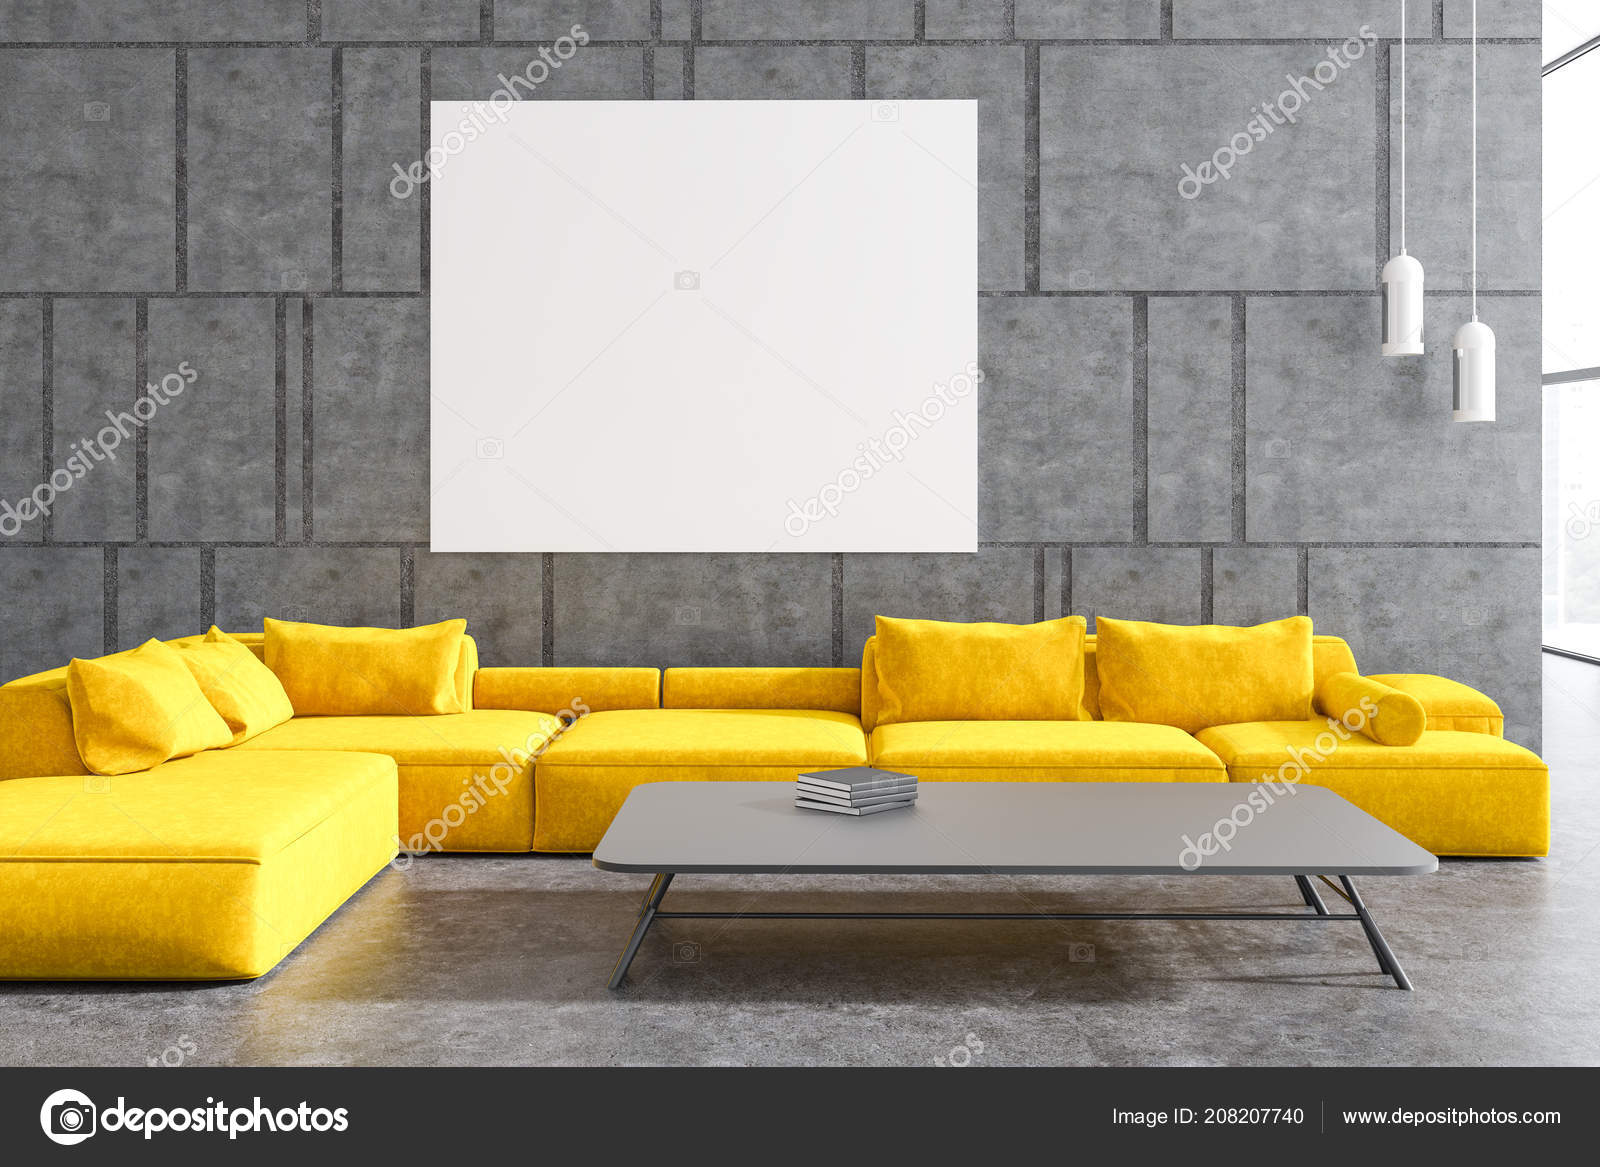 Modern living room interior with gray walls a conccrete floor and a yellow sofa a horizontal poster and a coffee table 3d rendering mock up photo by